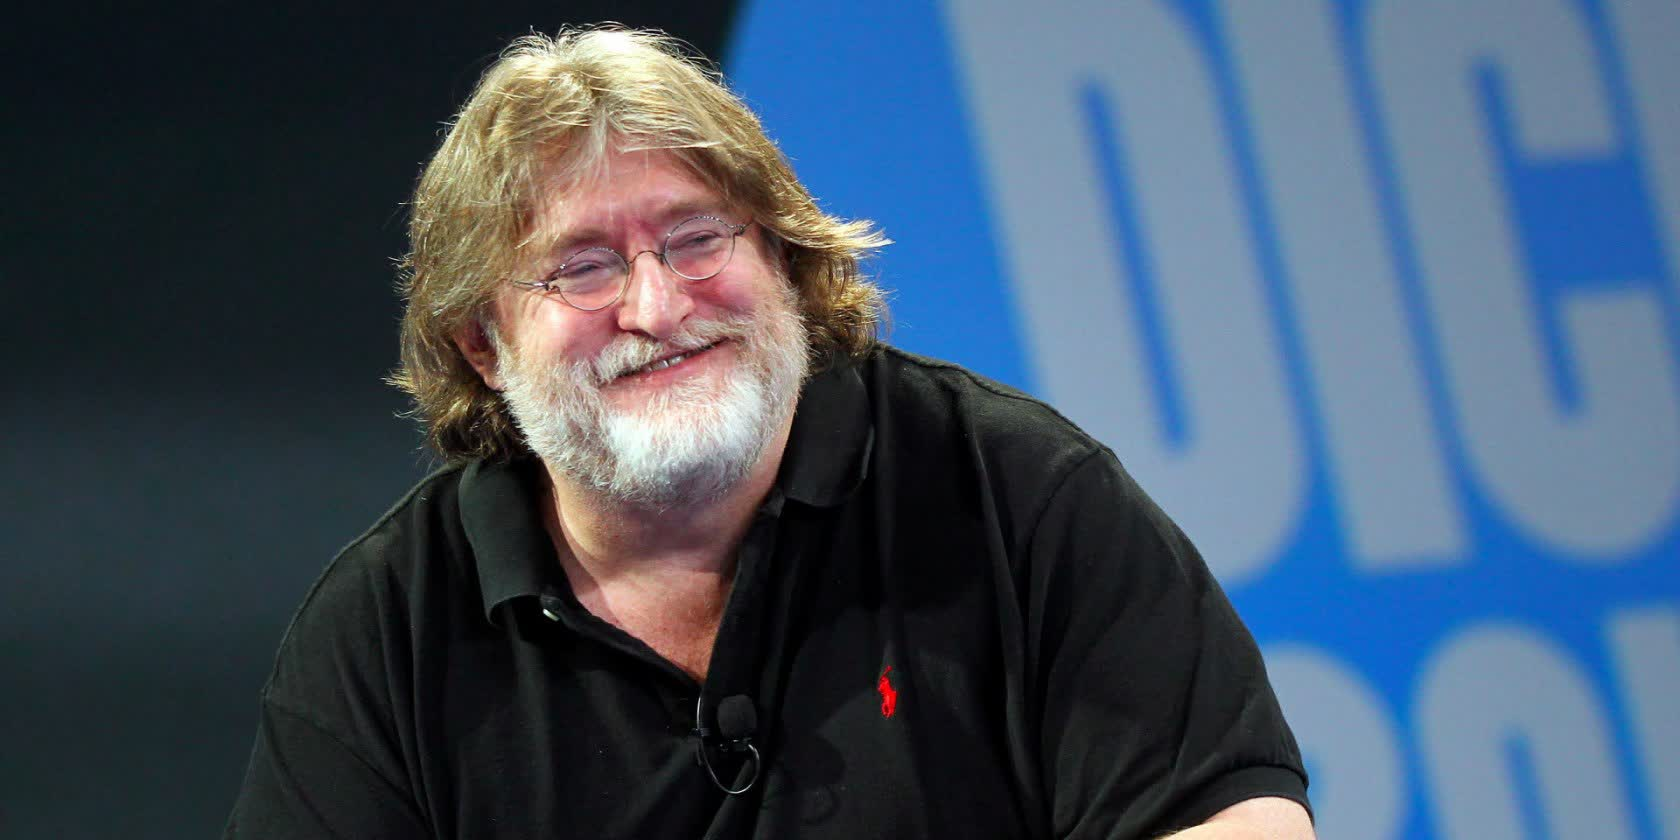 Gabe Newell says more Valve games are coming, gives verdict on Cyberpunk 2077